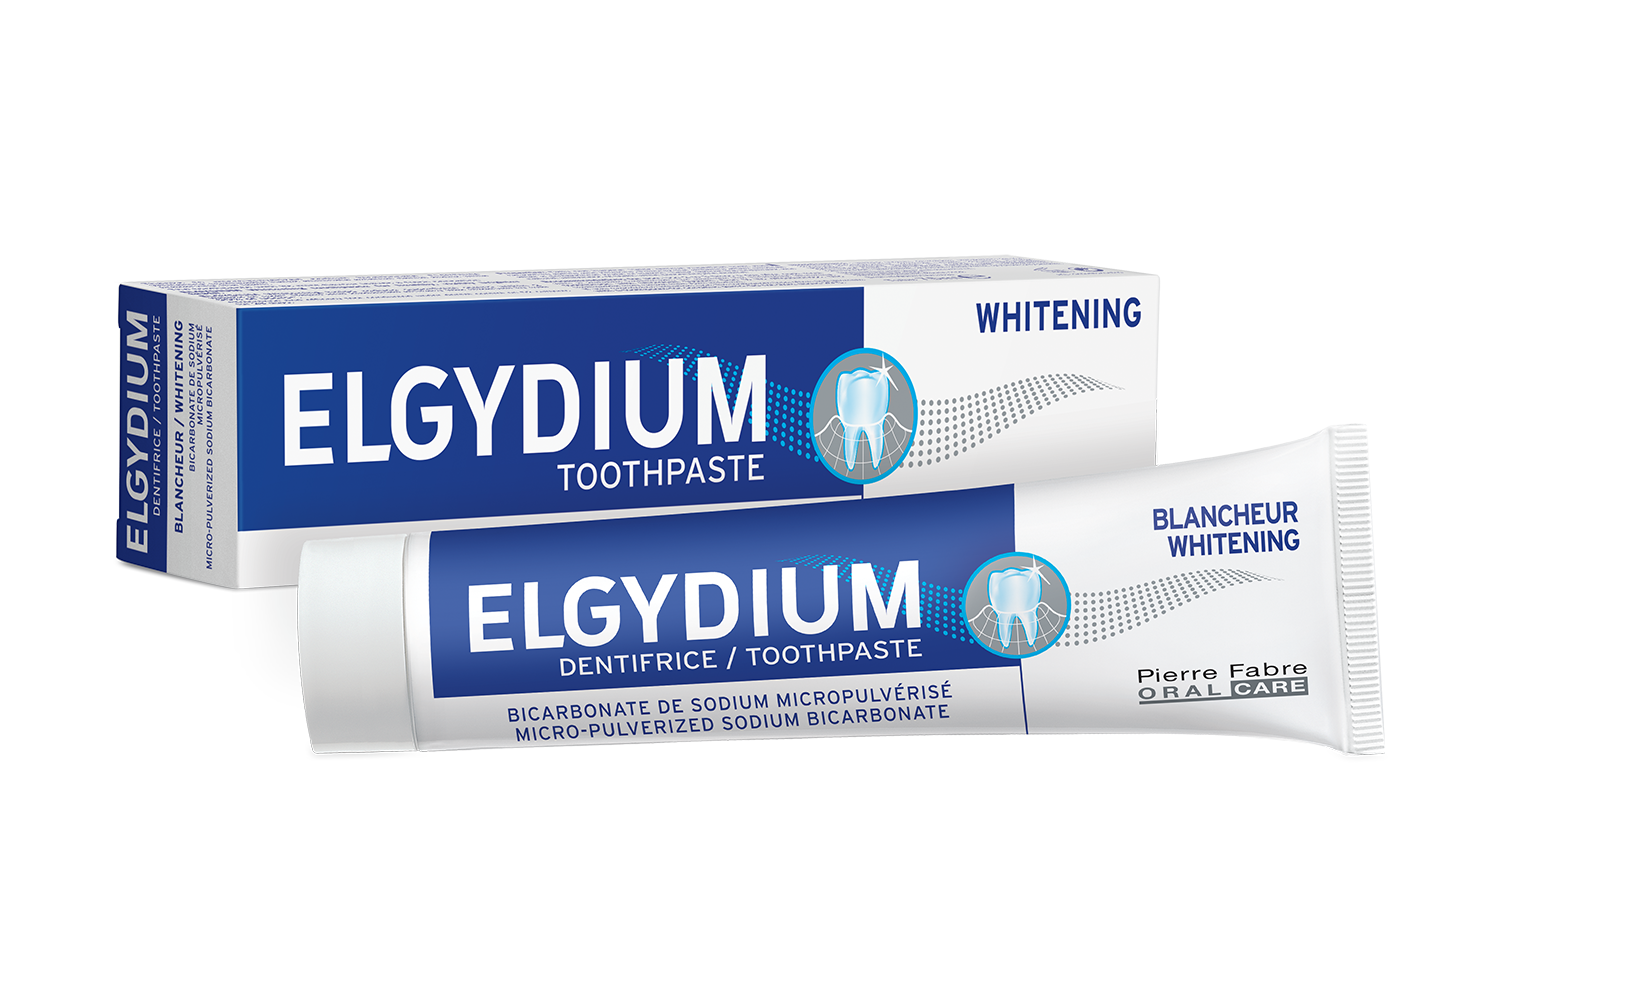 VISUAL_BoxandTube_Elgydium_Whitening_75ml_EN